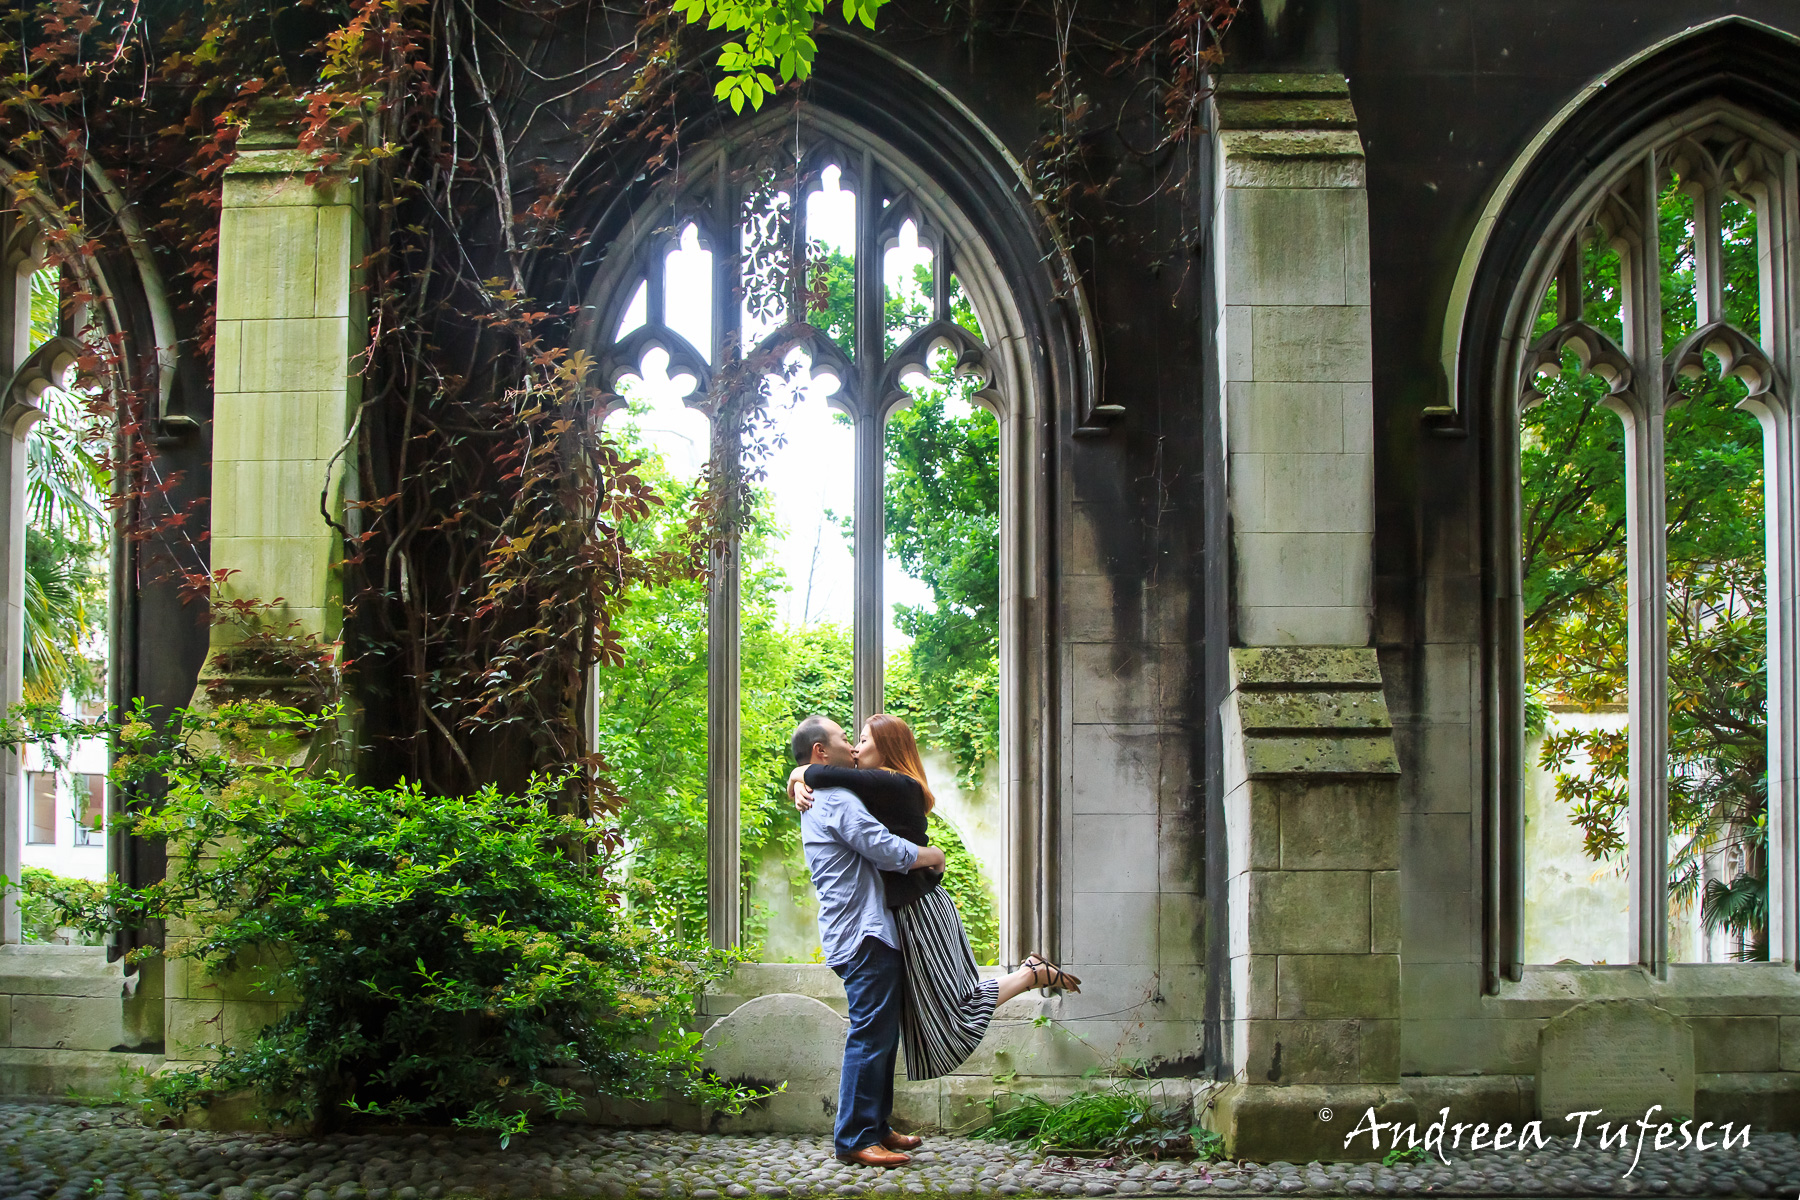 Wedding and Engagement Photography by Andreea Tufescu - H & R Engagement - PreWedding Photoshoot Central London Tower Bridge